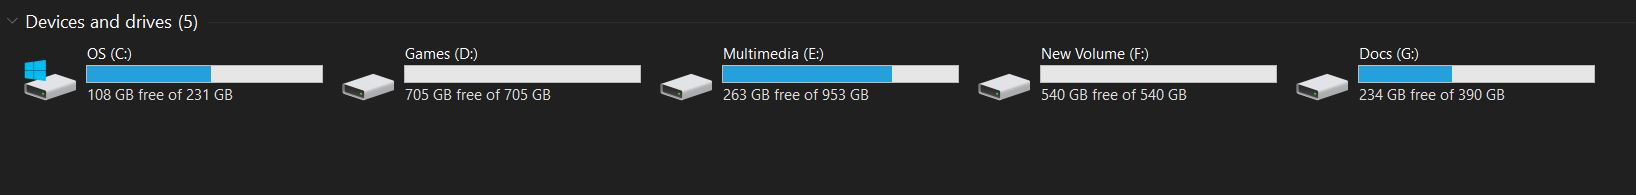 Can't select a different drive to install app/games from Microsoft Store d43bbab7-0bbf-48c5-bd39-0b0d03b15ea0?upload=true.jpg